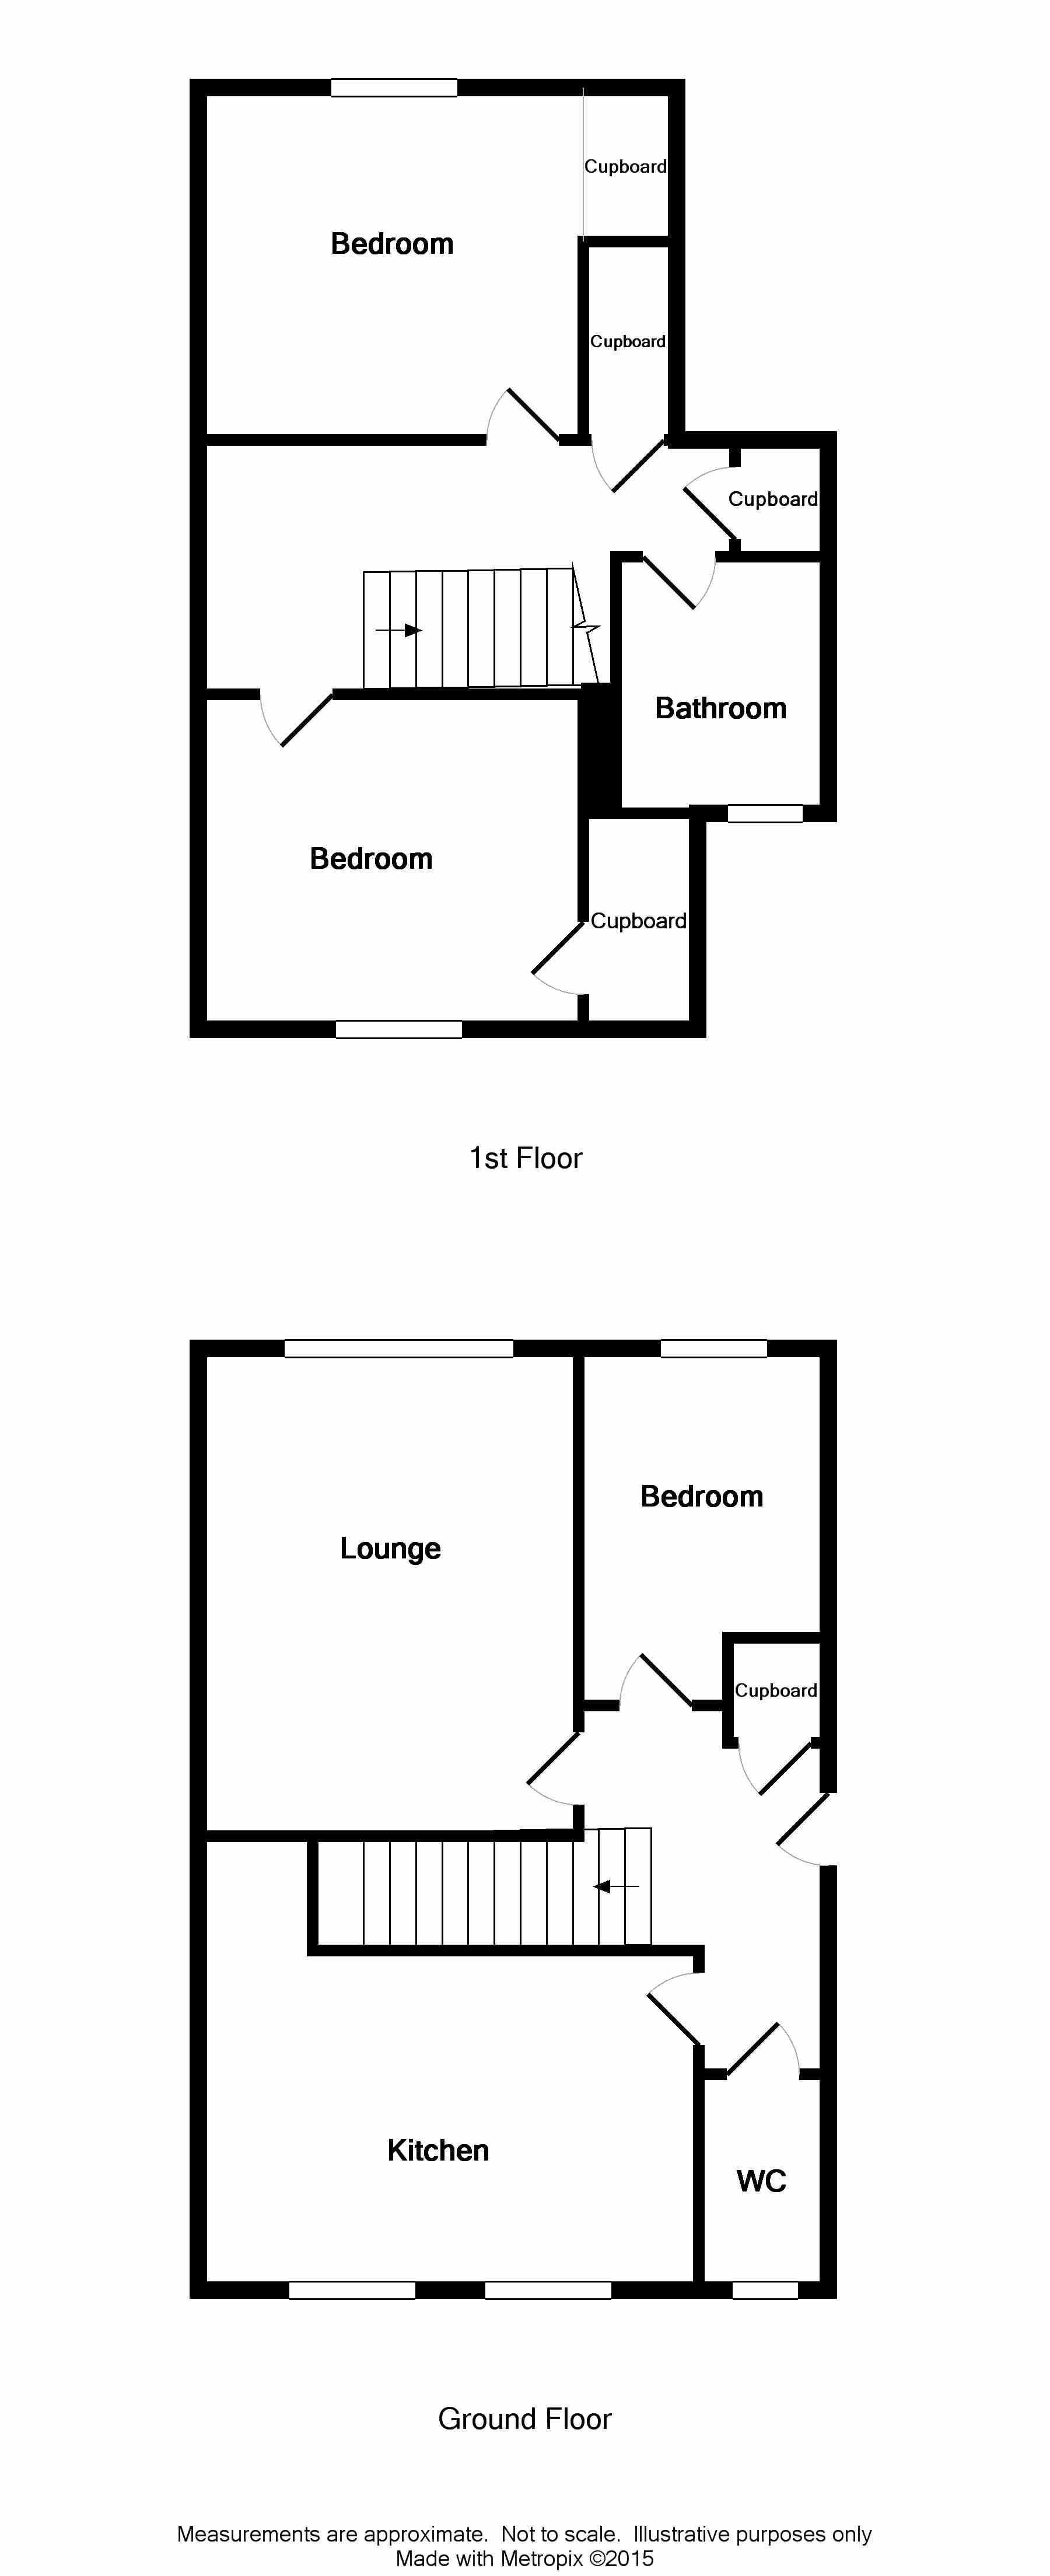 Floor Plan for 4B Lewis Street